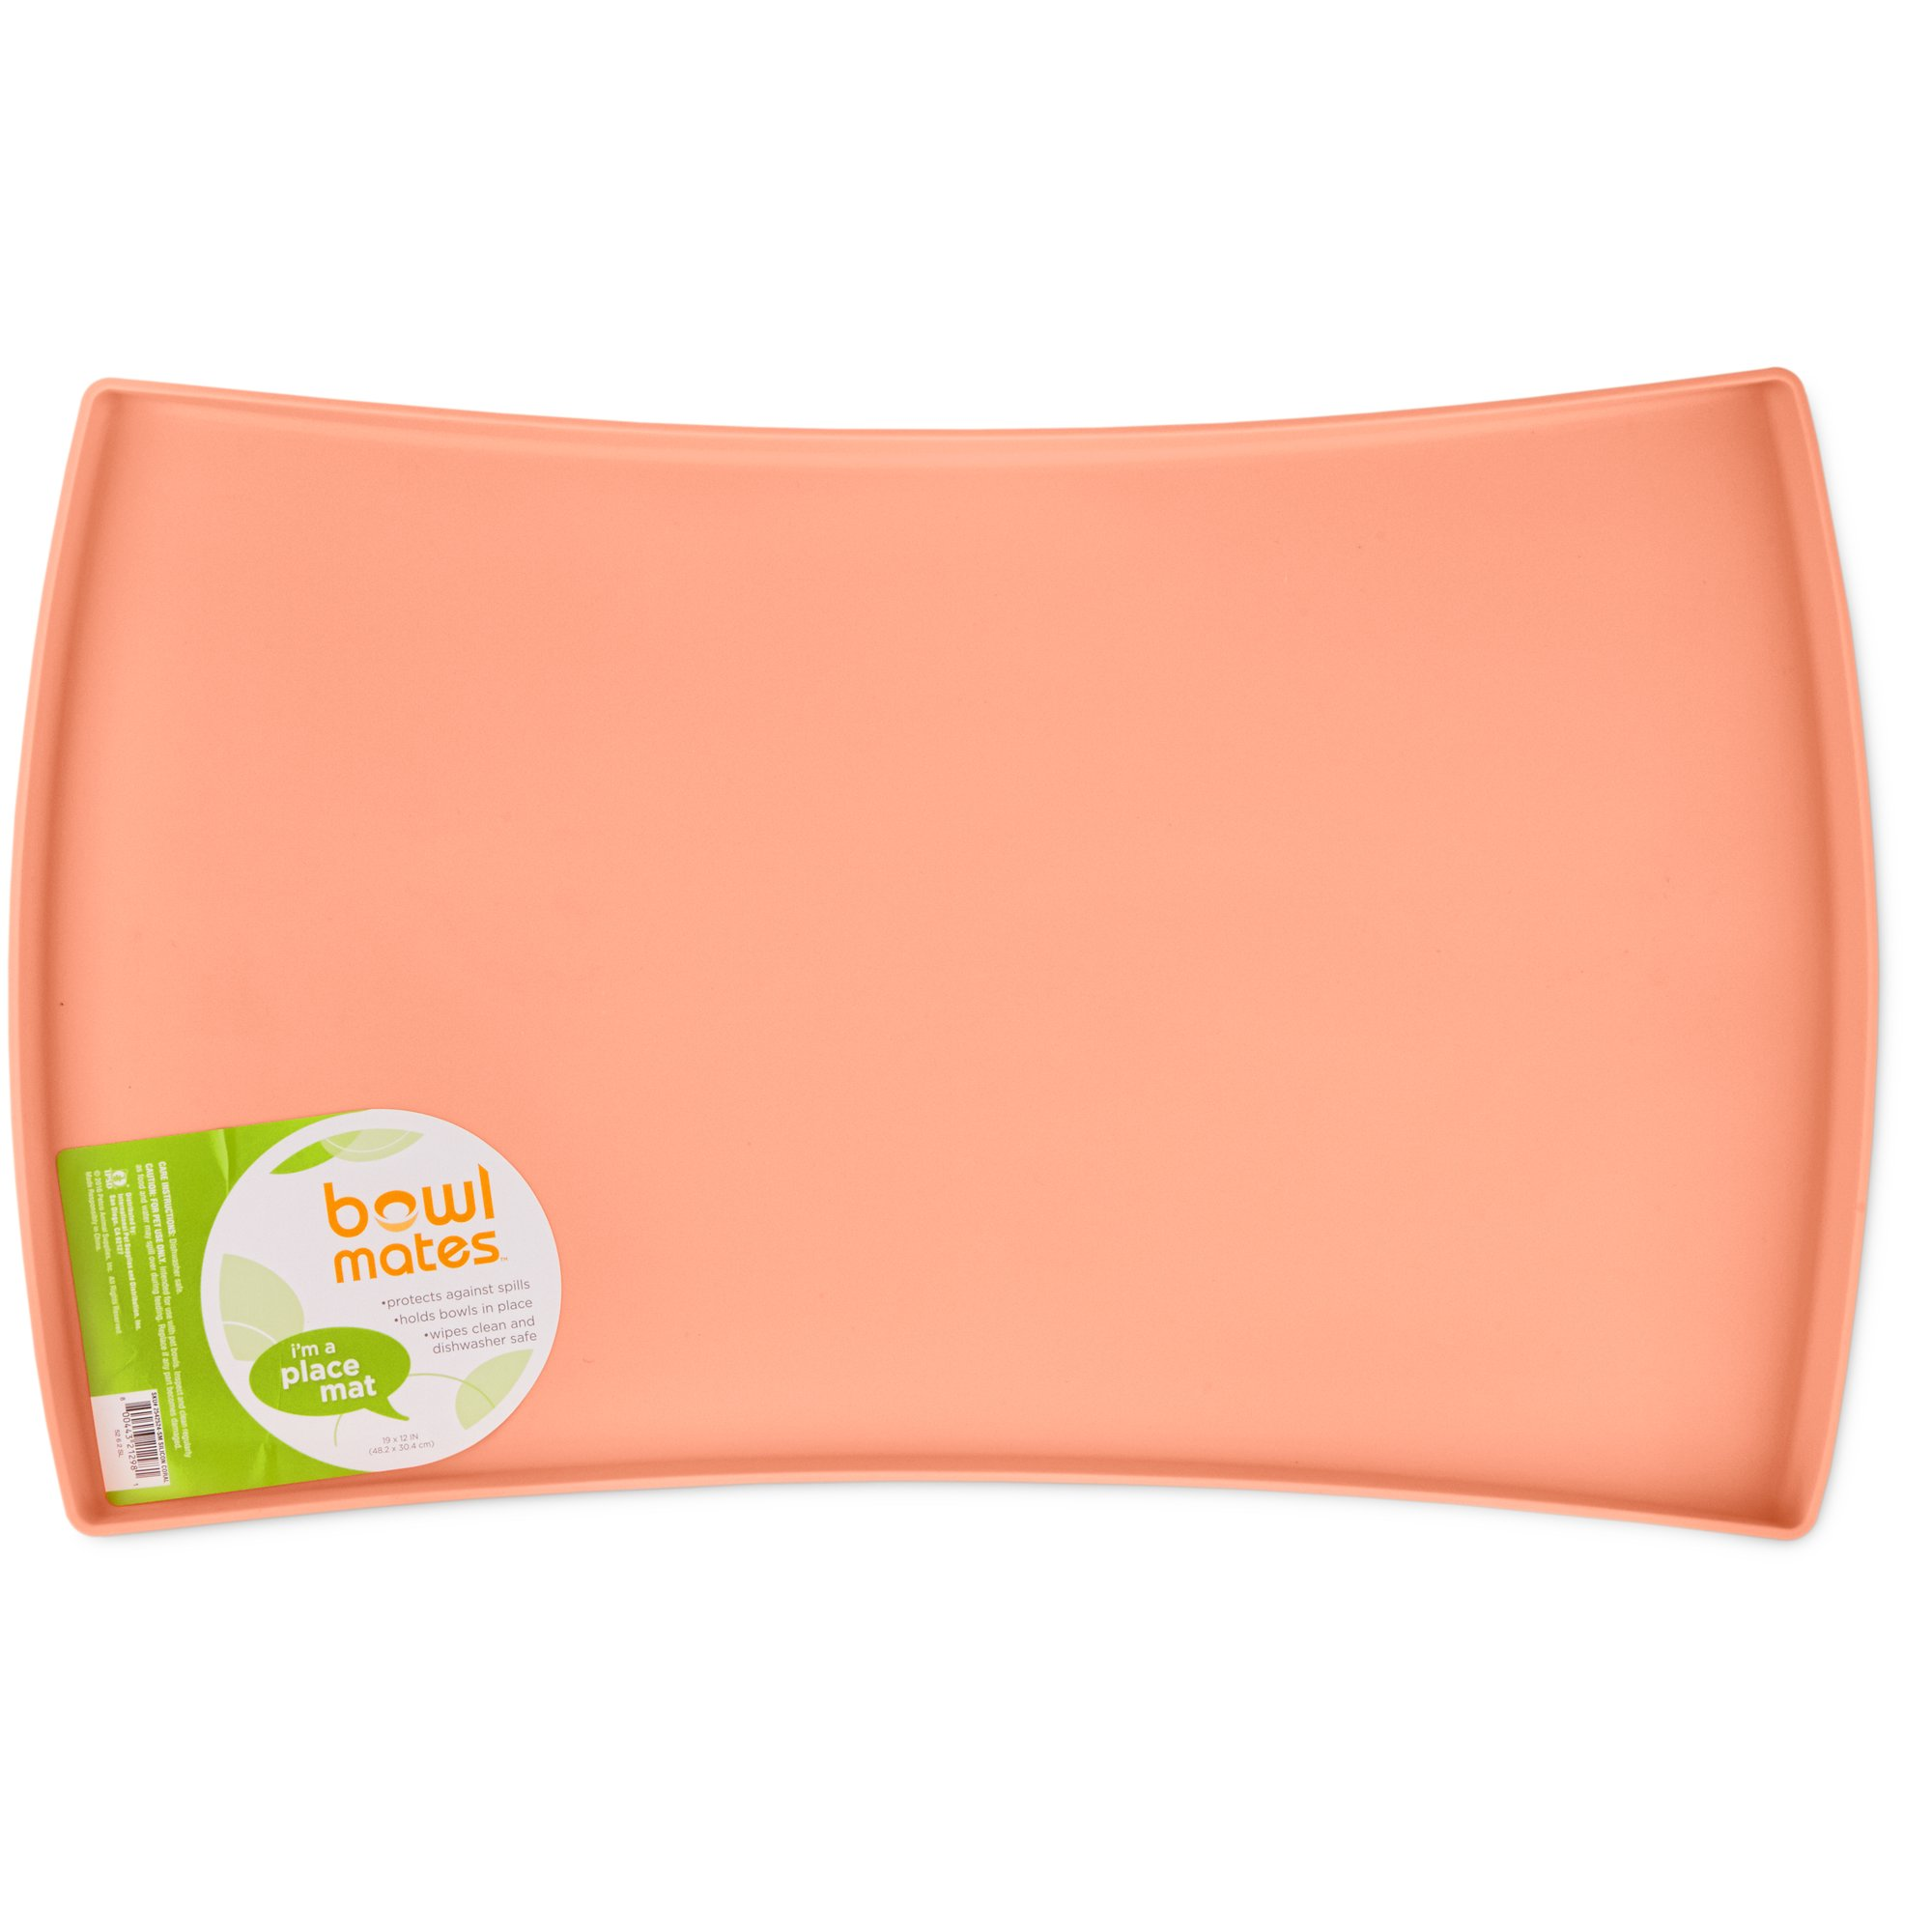 Bowlmates Coral Silicone Placemat